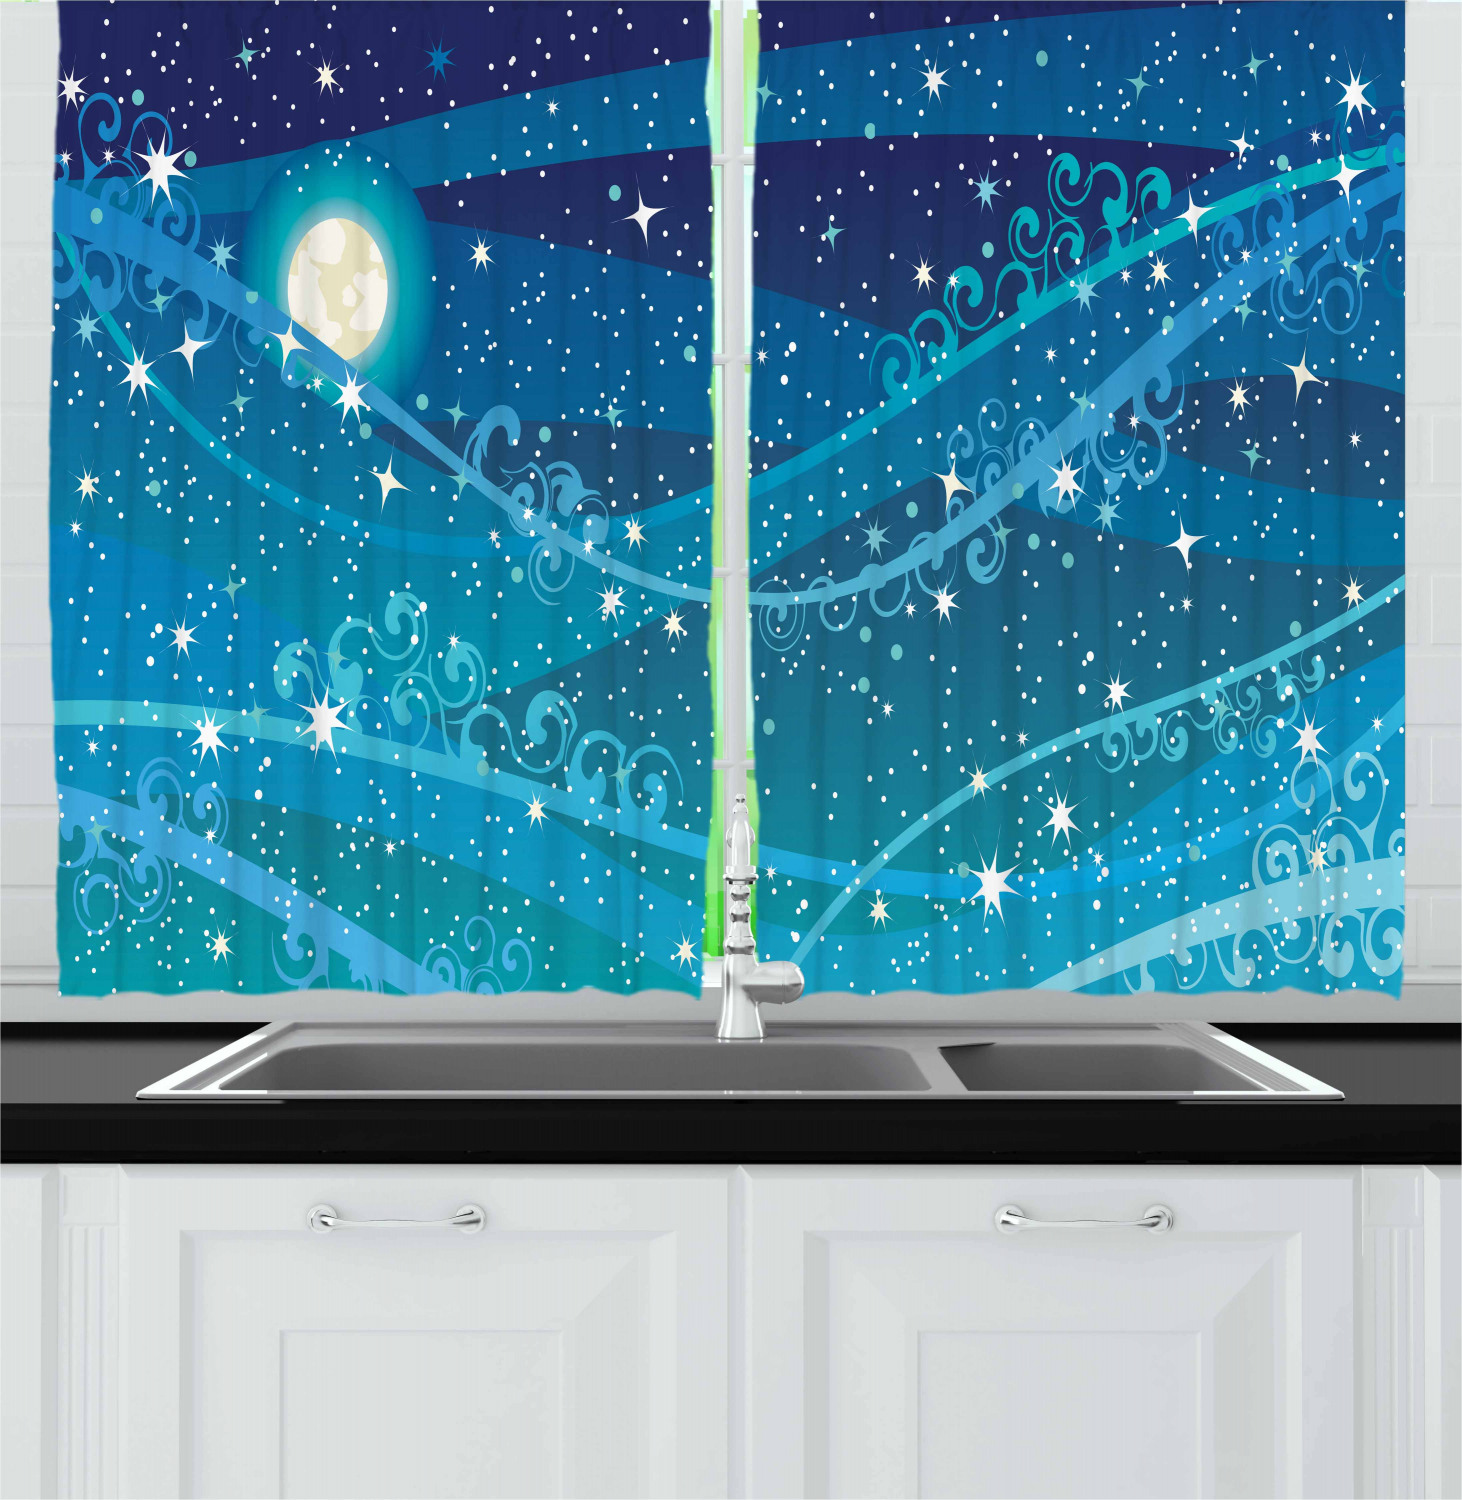 Starry Night Curtains 2 Panels Set Night Sky With Full Moon Astronomy Theme Dots Stripes Swirls Pattern Window Drapes For Living Room Bedroom 55w X 39l Inches Blue Navy Blue White By